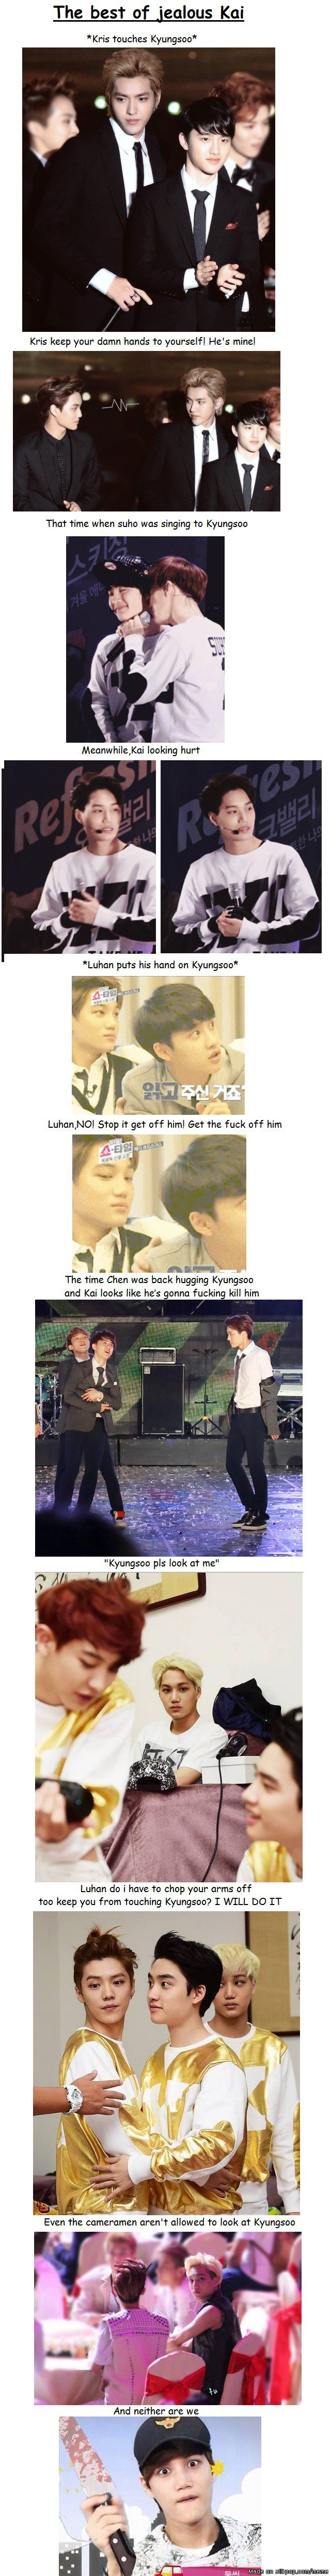 awwwww ^ ^ i think kaisoo is my favourite ship of all time